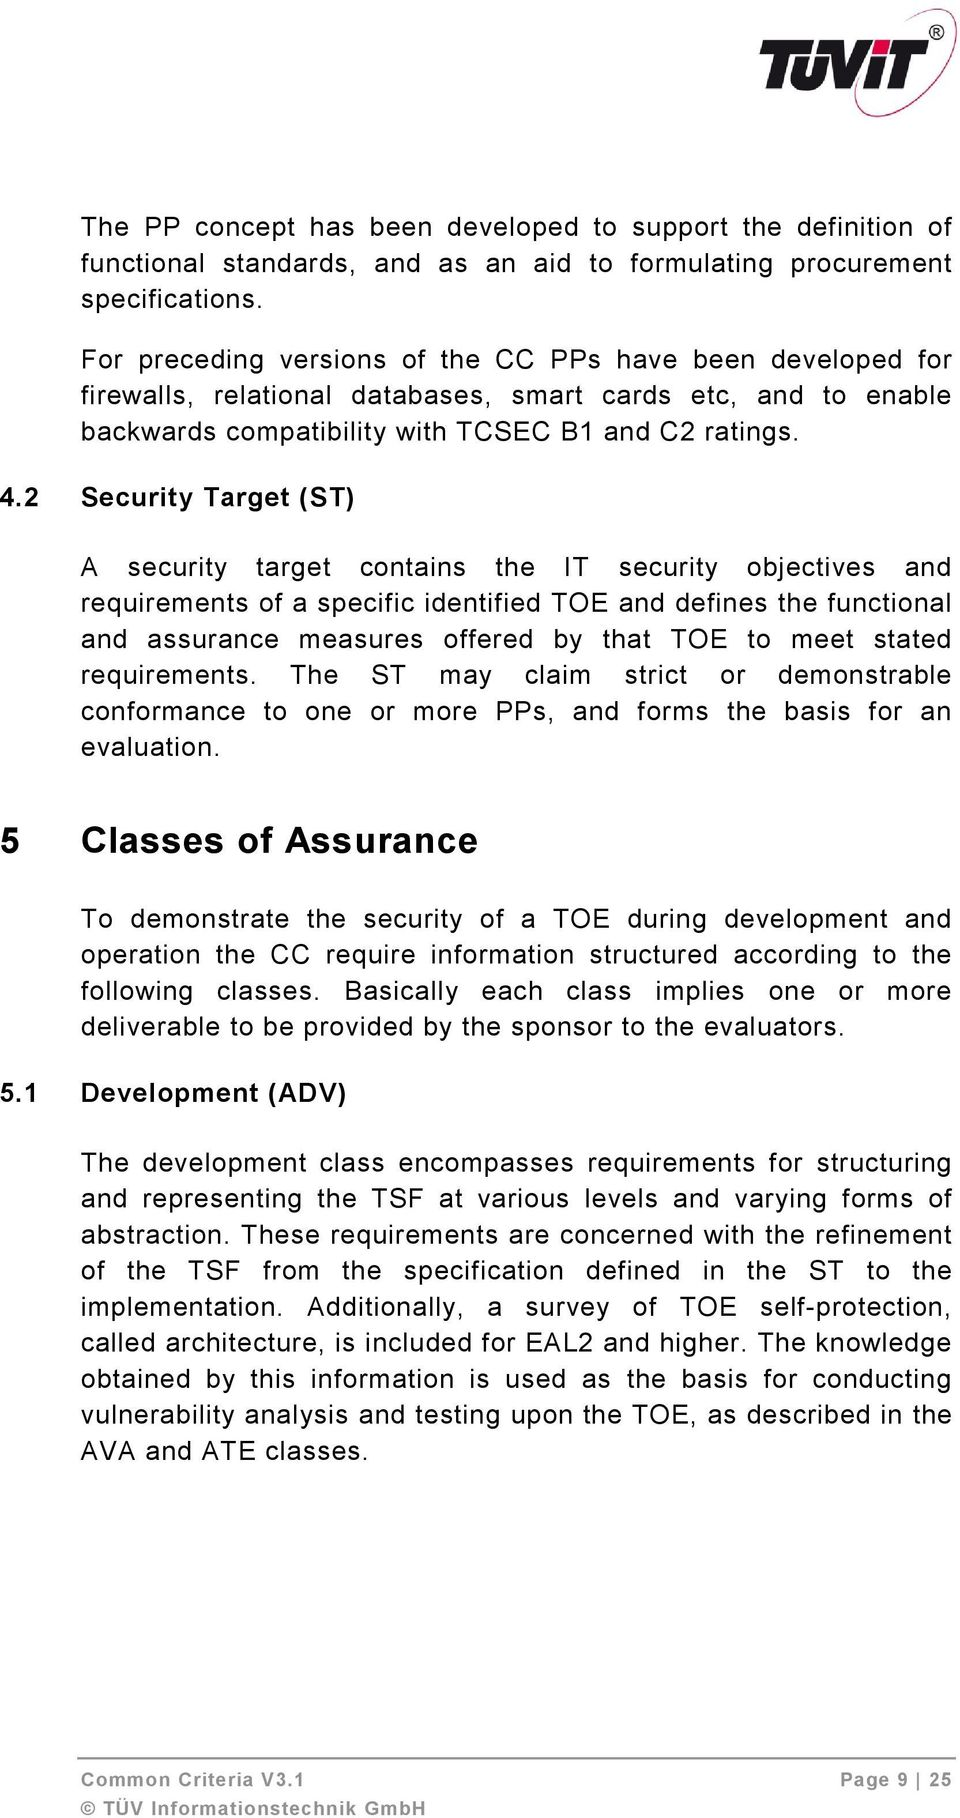 2 Security Target (ST) A security target contains the IT security objectives and requirements of a specific identified TOE and defines the functional and assurance measures offered by that TOE to